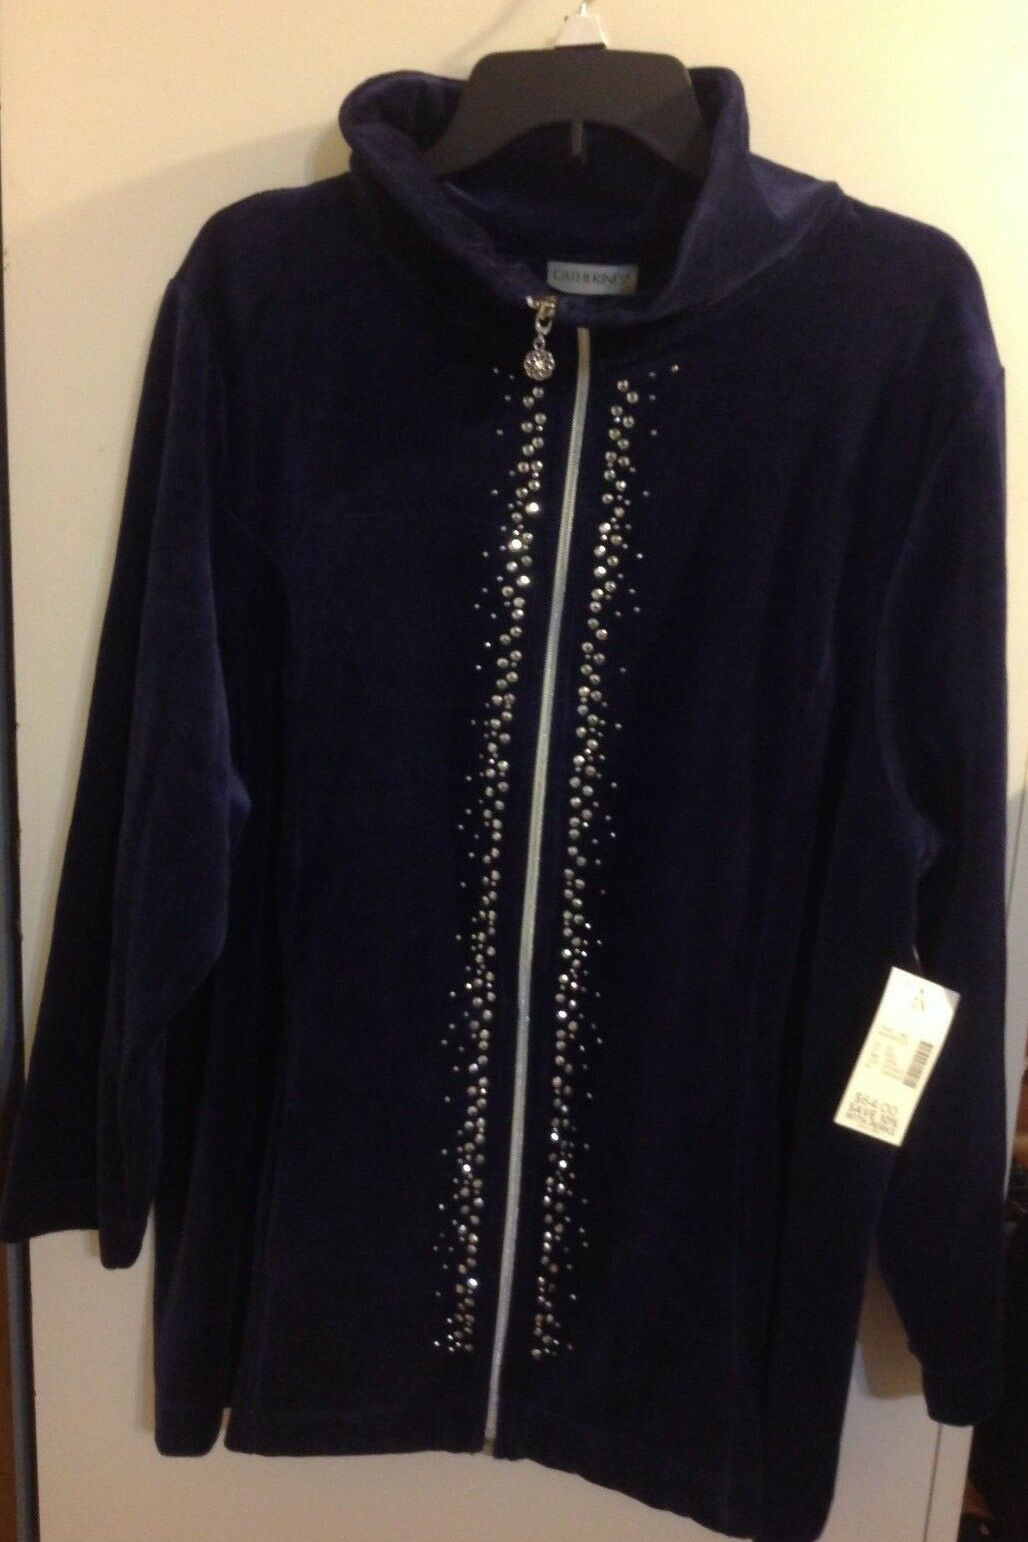 Catherines Women's Beaded Zip Up Sweater Size 2X 22 24W. New With Tag